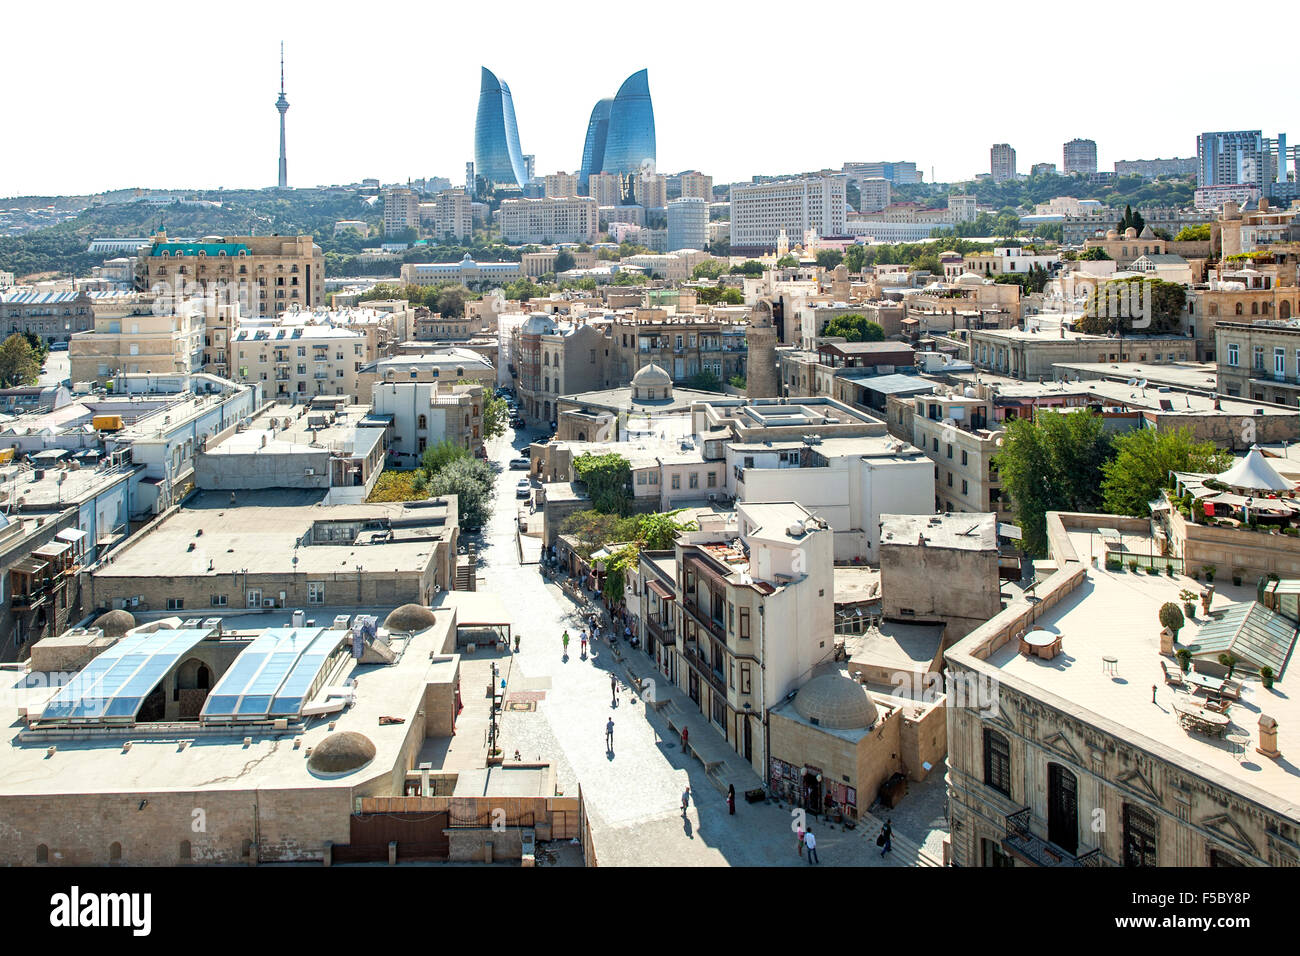 View from Maiden Tower of the old town and skyline of Baku, the capital of Azerbaijan. - Stock Image